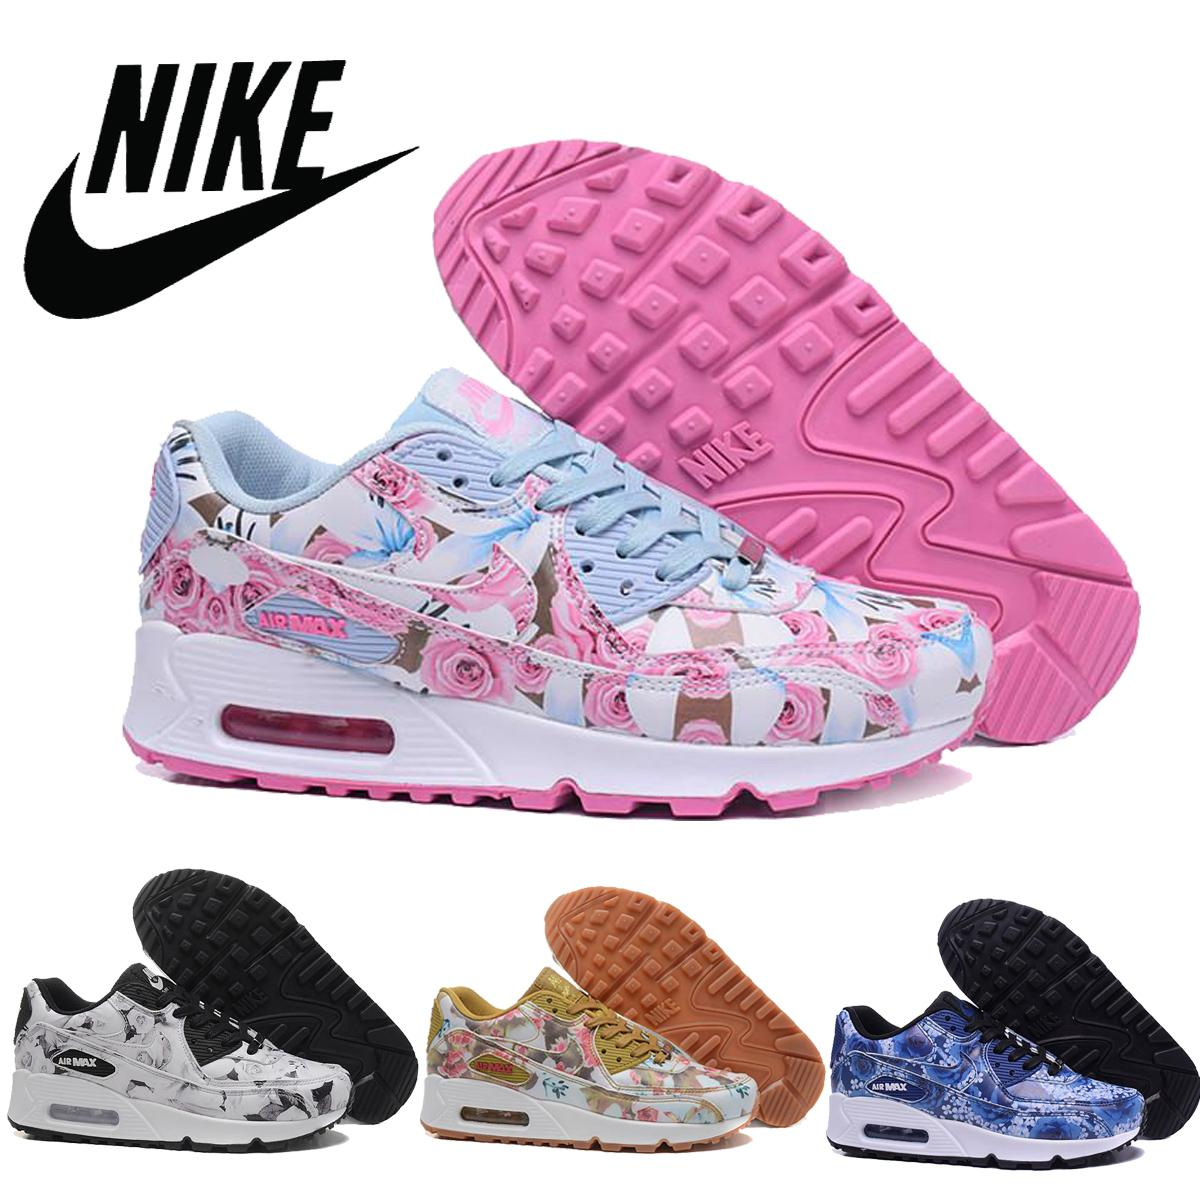 separation shoes 447dc 2b33a Nike Air Max 90 Womens Lon Prs Tko Mln Nyc Shoes Cheap Running Shoes Mens  Ourdoor Sports Shoes Hiking Shoe Sneaker Women Jogging Shoes Free Shoes  Discount ...